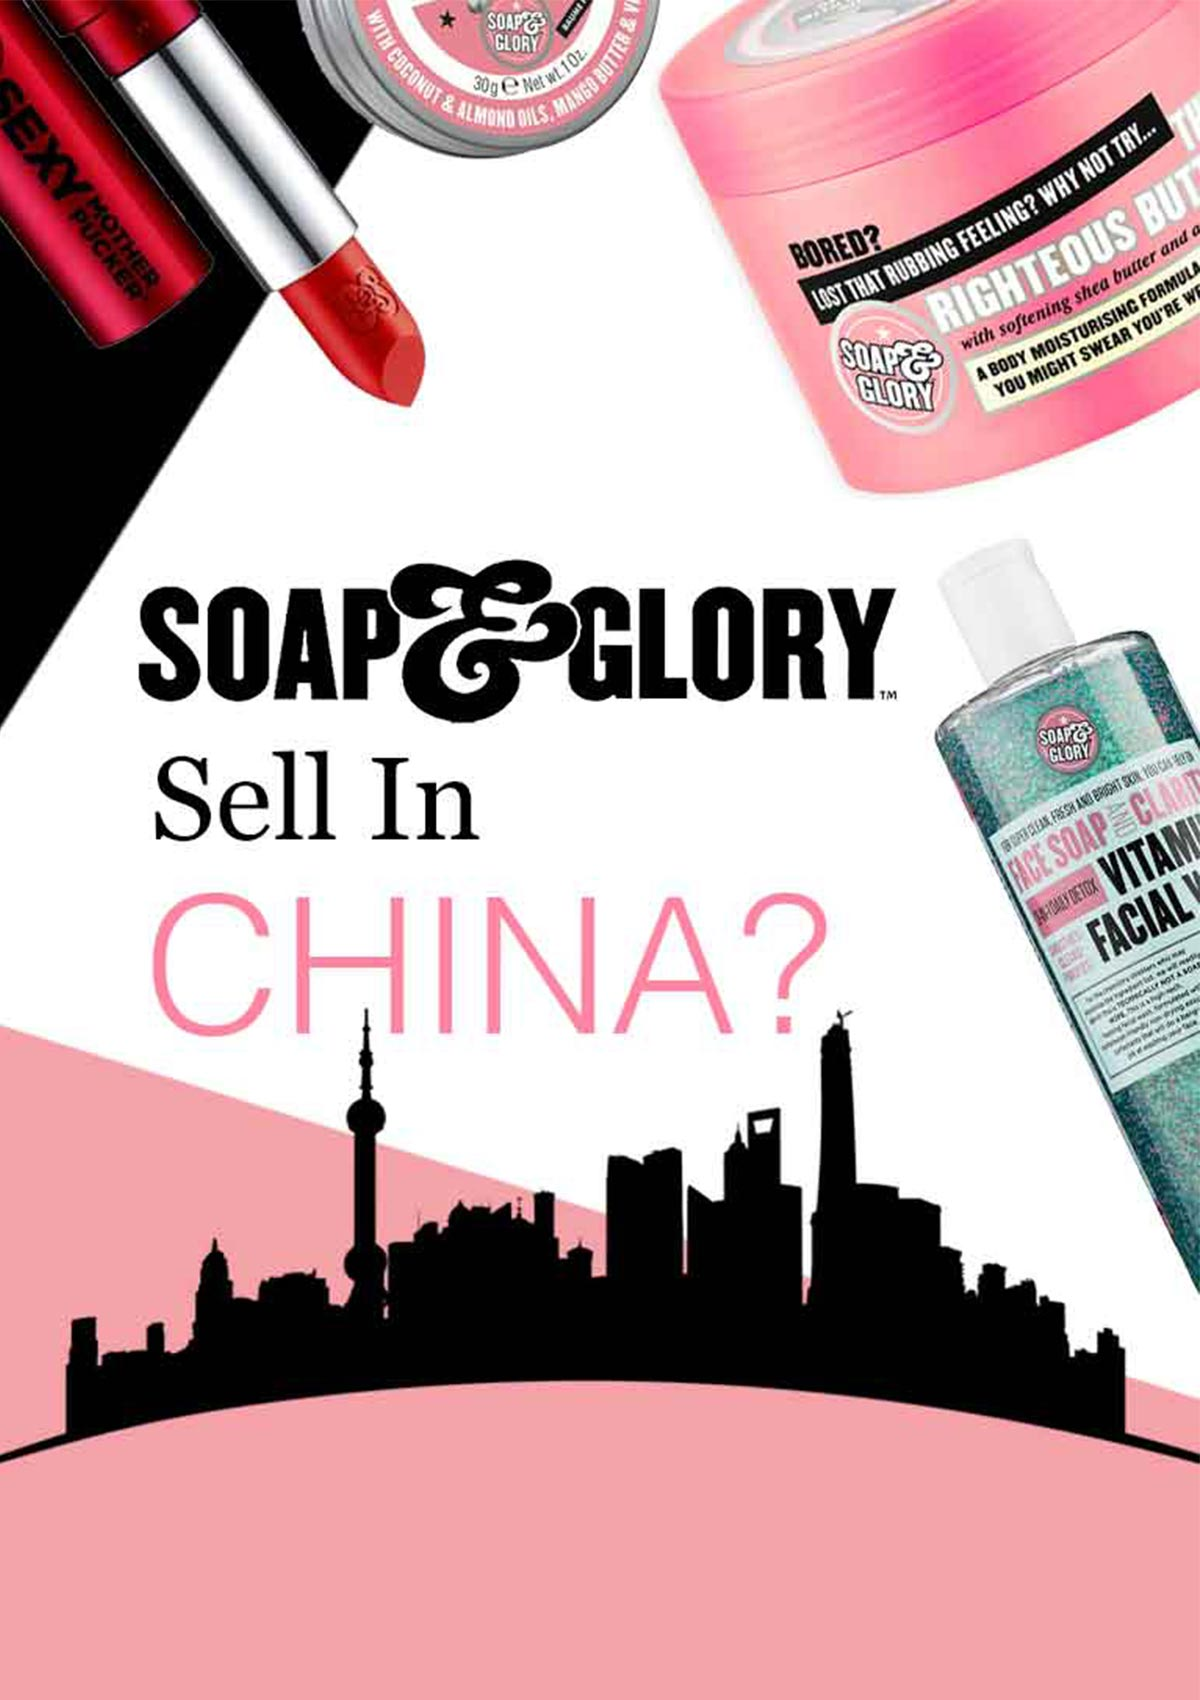 china sky line and soap and glory products